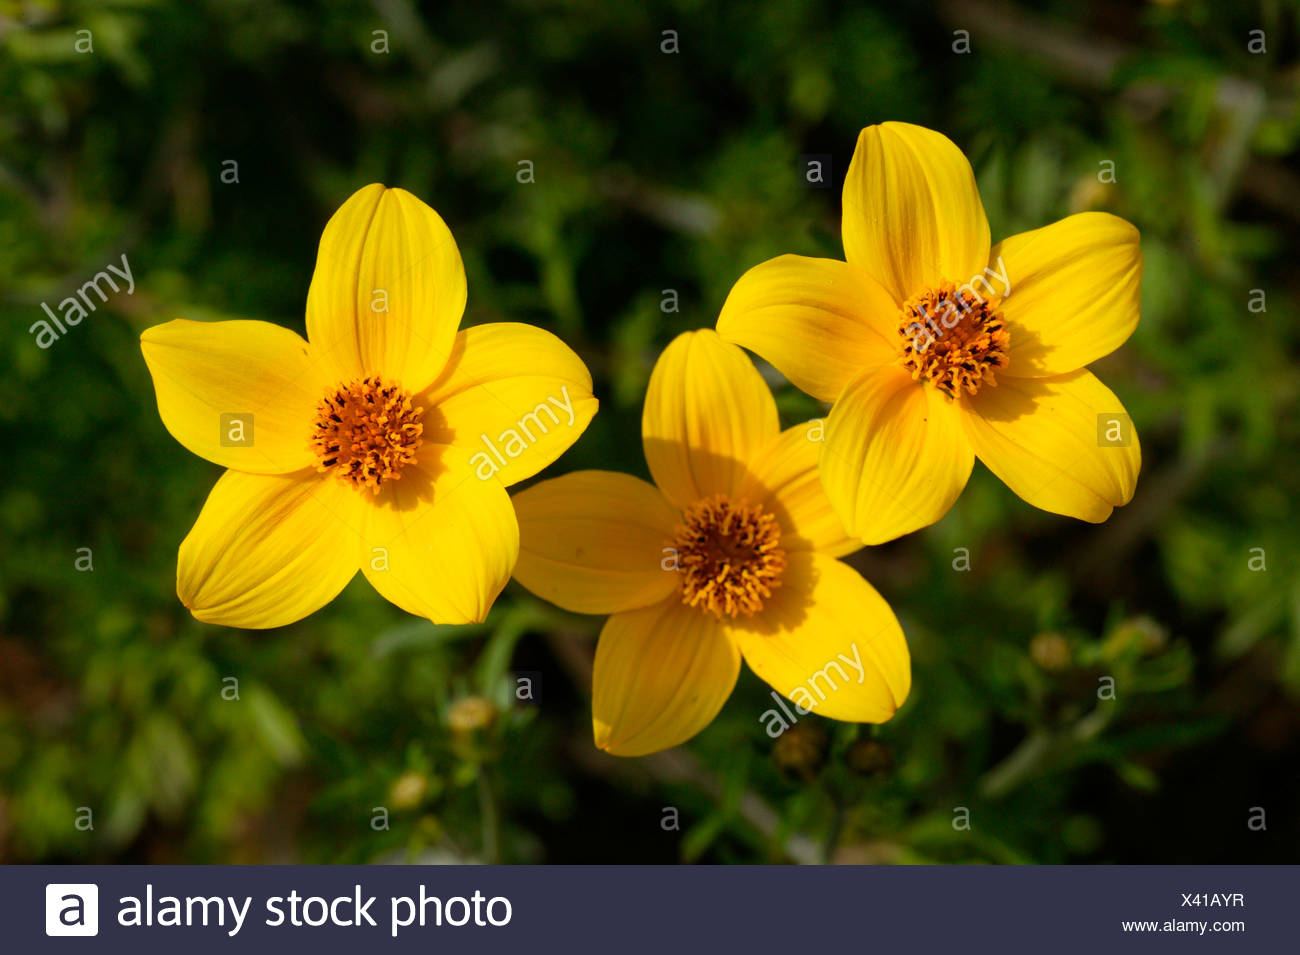 Zweizahn High Resolution Stock Photography And Images Alamy